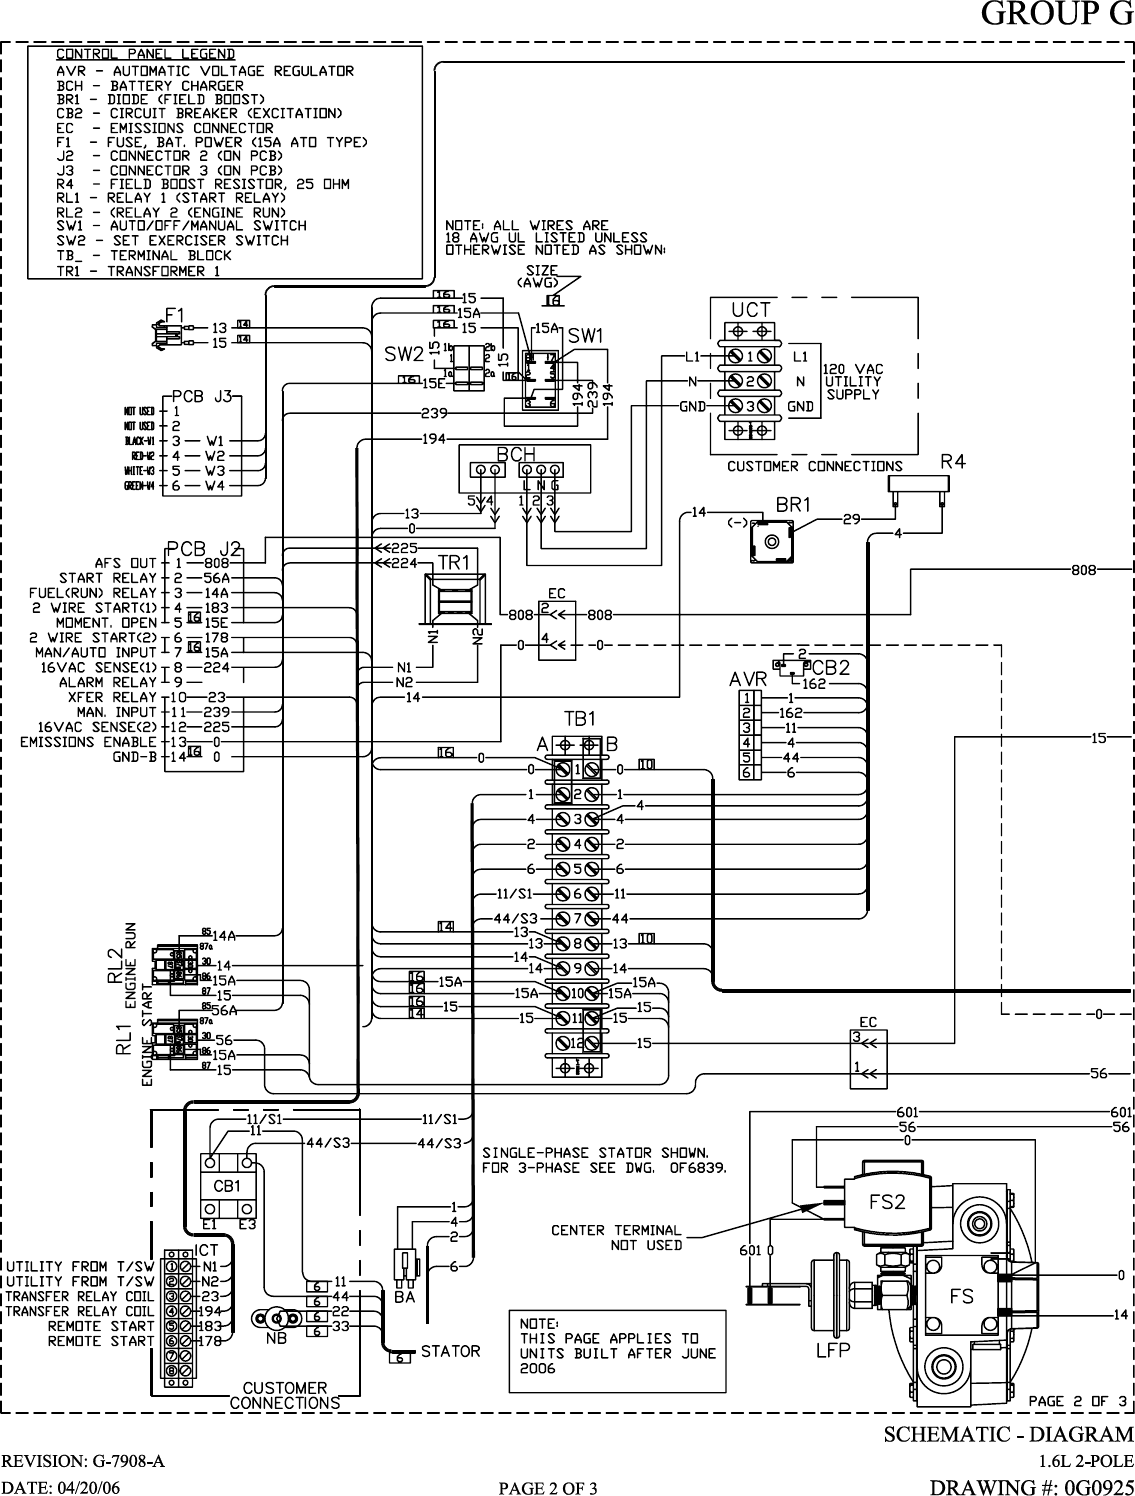 Generac Power Systems 005336 0 005337 Users Manual Cover079 Rev0 07 06 Washing Machine Circuit Diagram On Generator Standby Sets